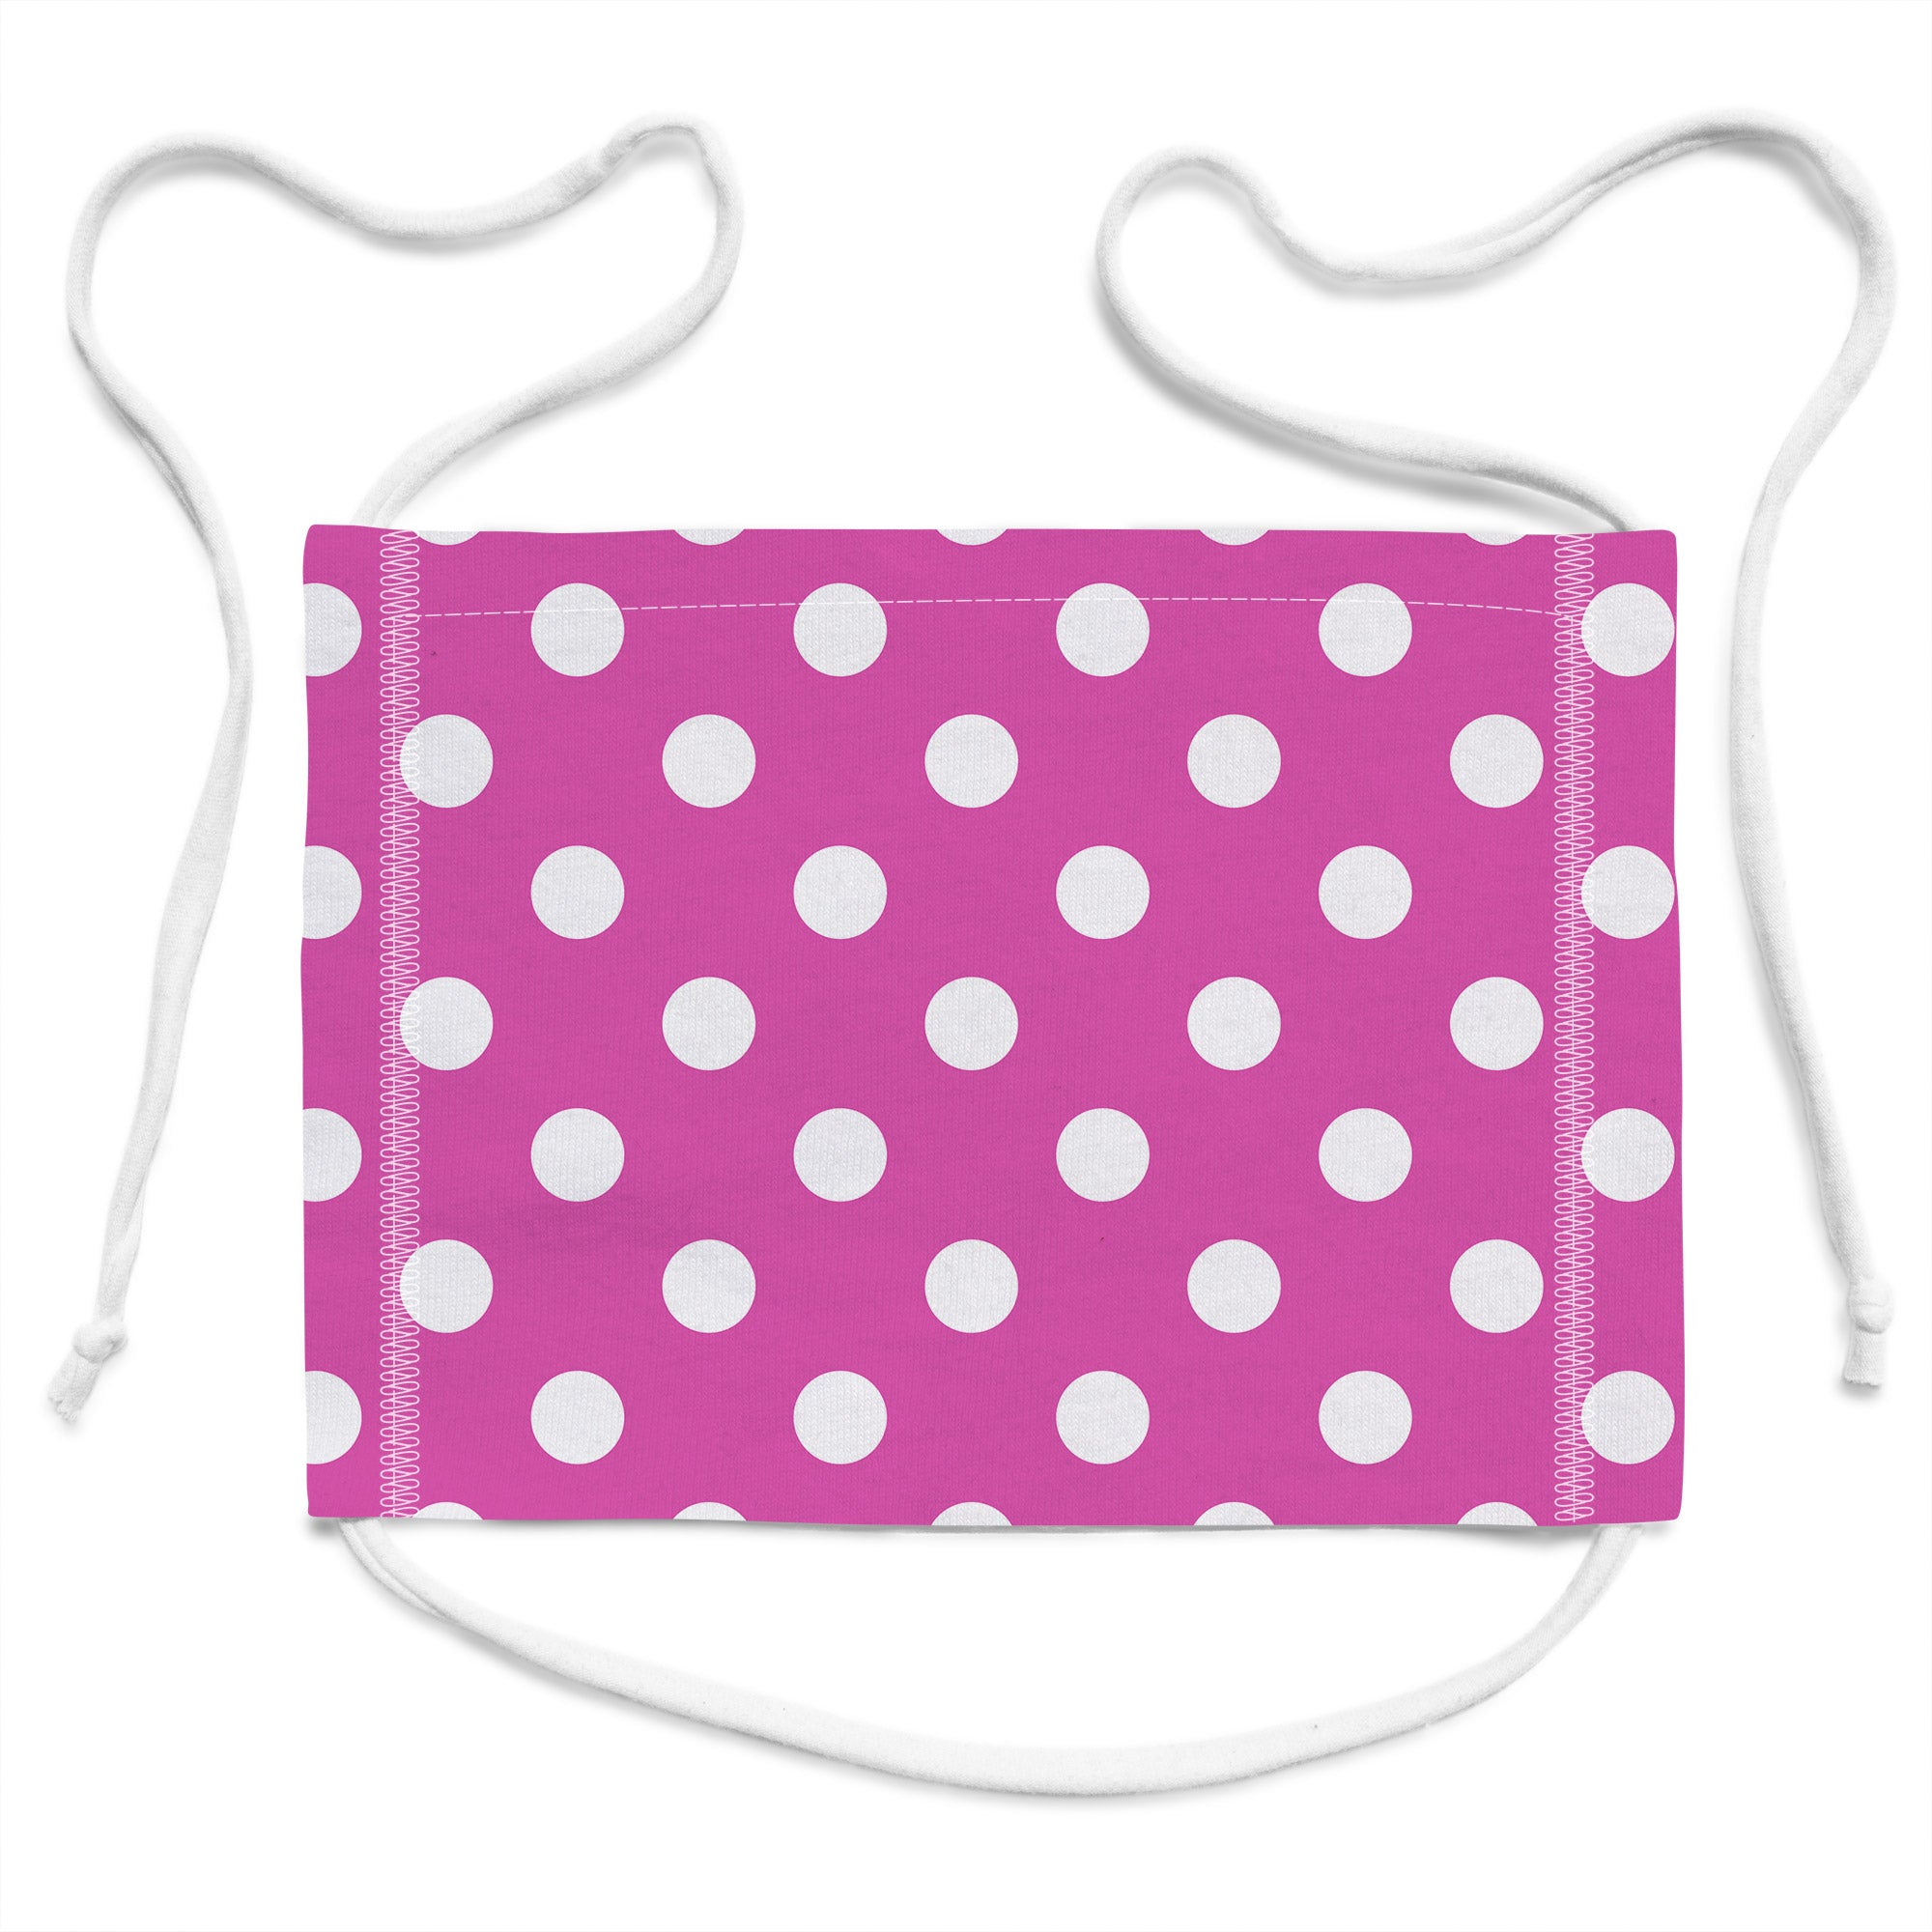 CHEAP Pink Polka Face Mask 26660545837 – Clothing Accessories